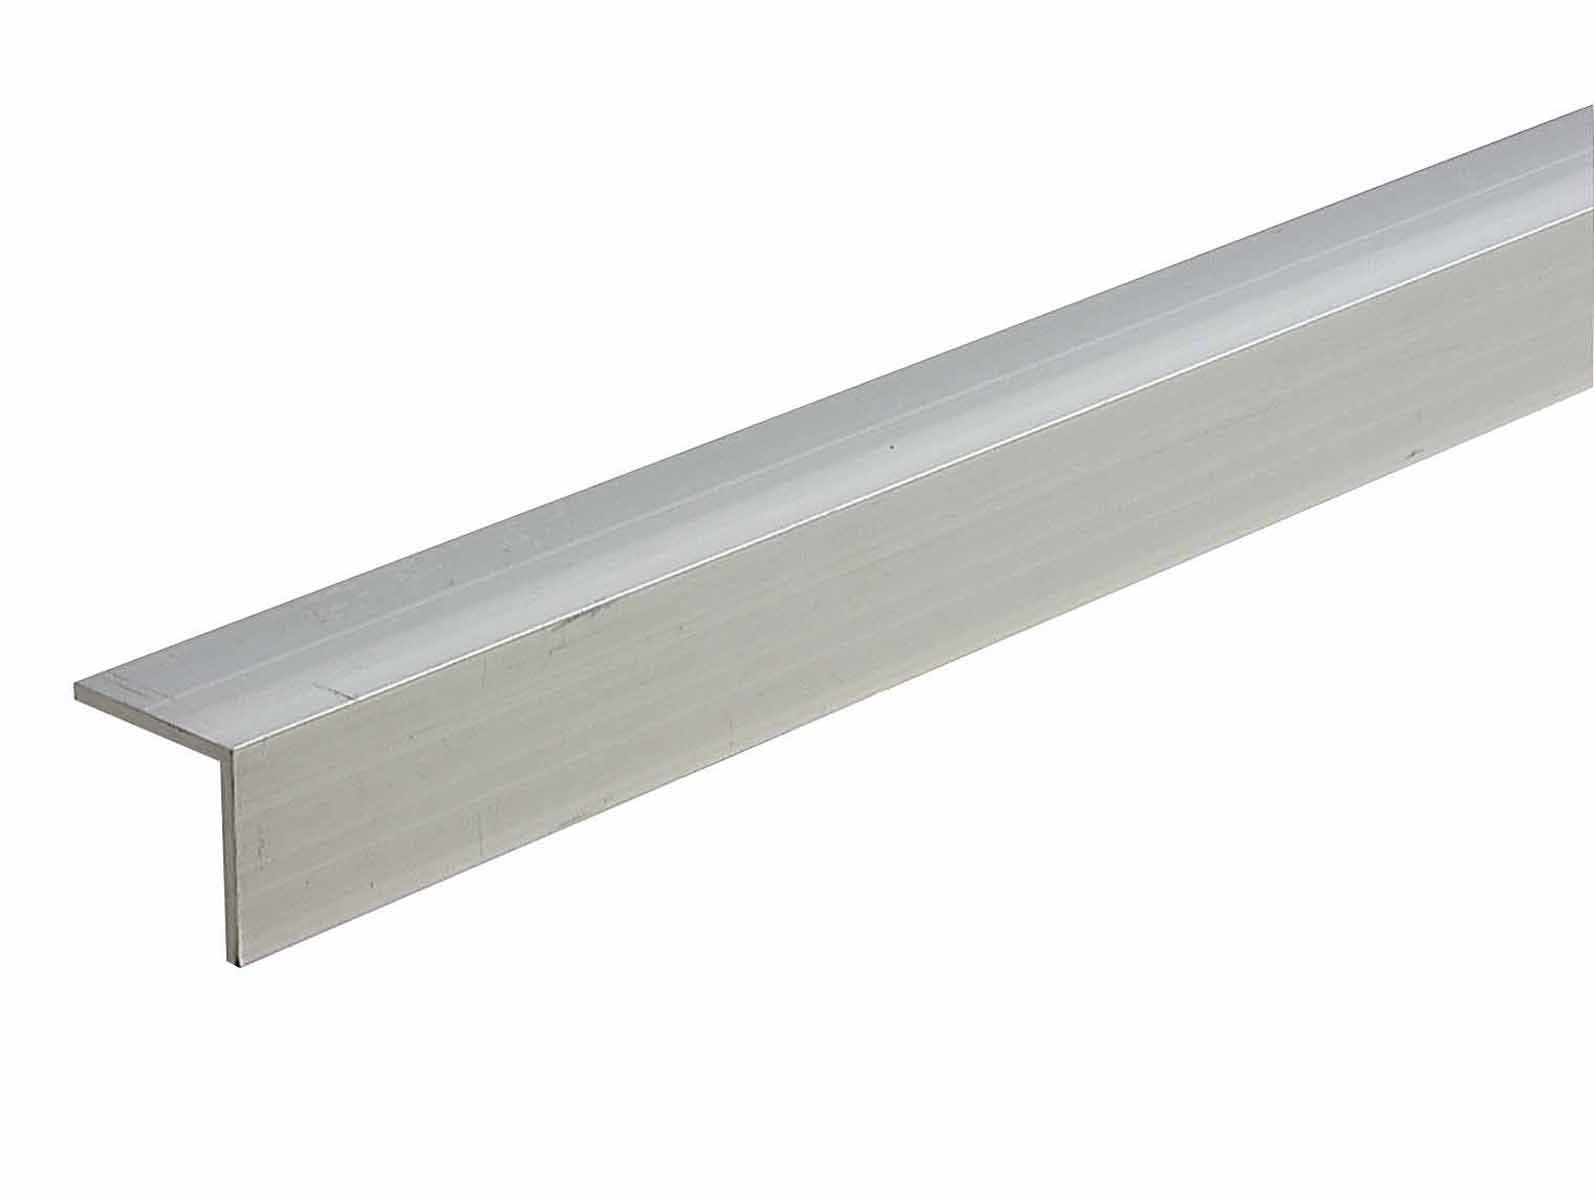 M-D Building Products 61649 1/2-Inch by 1/2-Inch by 1/18-Inch by 48-Inch Angle Equal Leg Mill